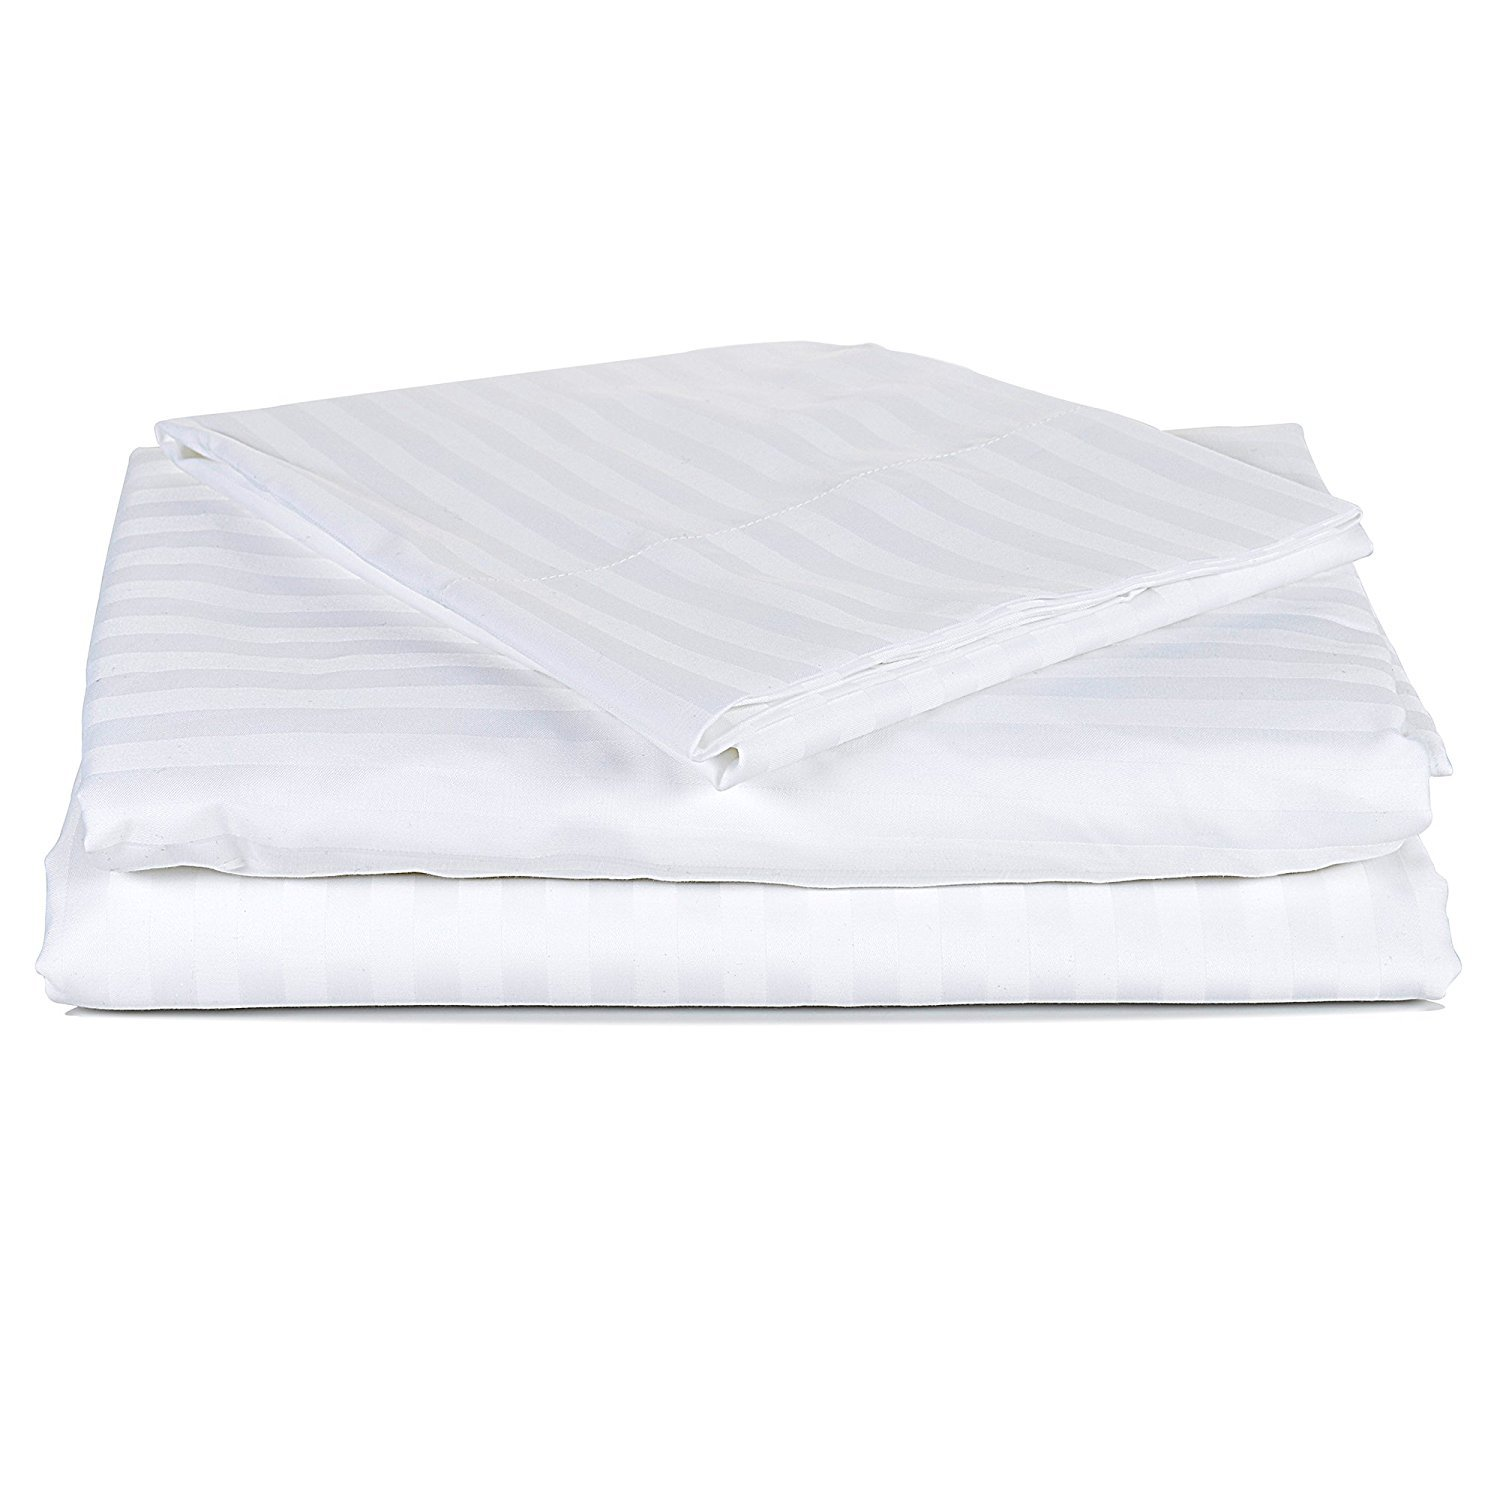 Pure Element Wrinkle-free Luxury Hotel Style 4-Piece Sheet Set, Premium Ultra Comfortable and Soft Design, Single Ply Egyptian Cotton - California King Size - By